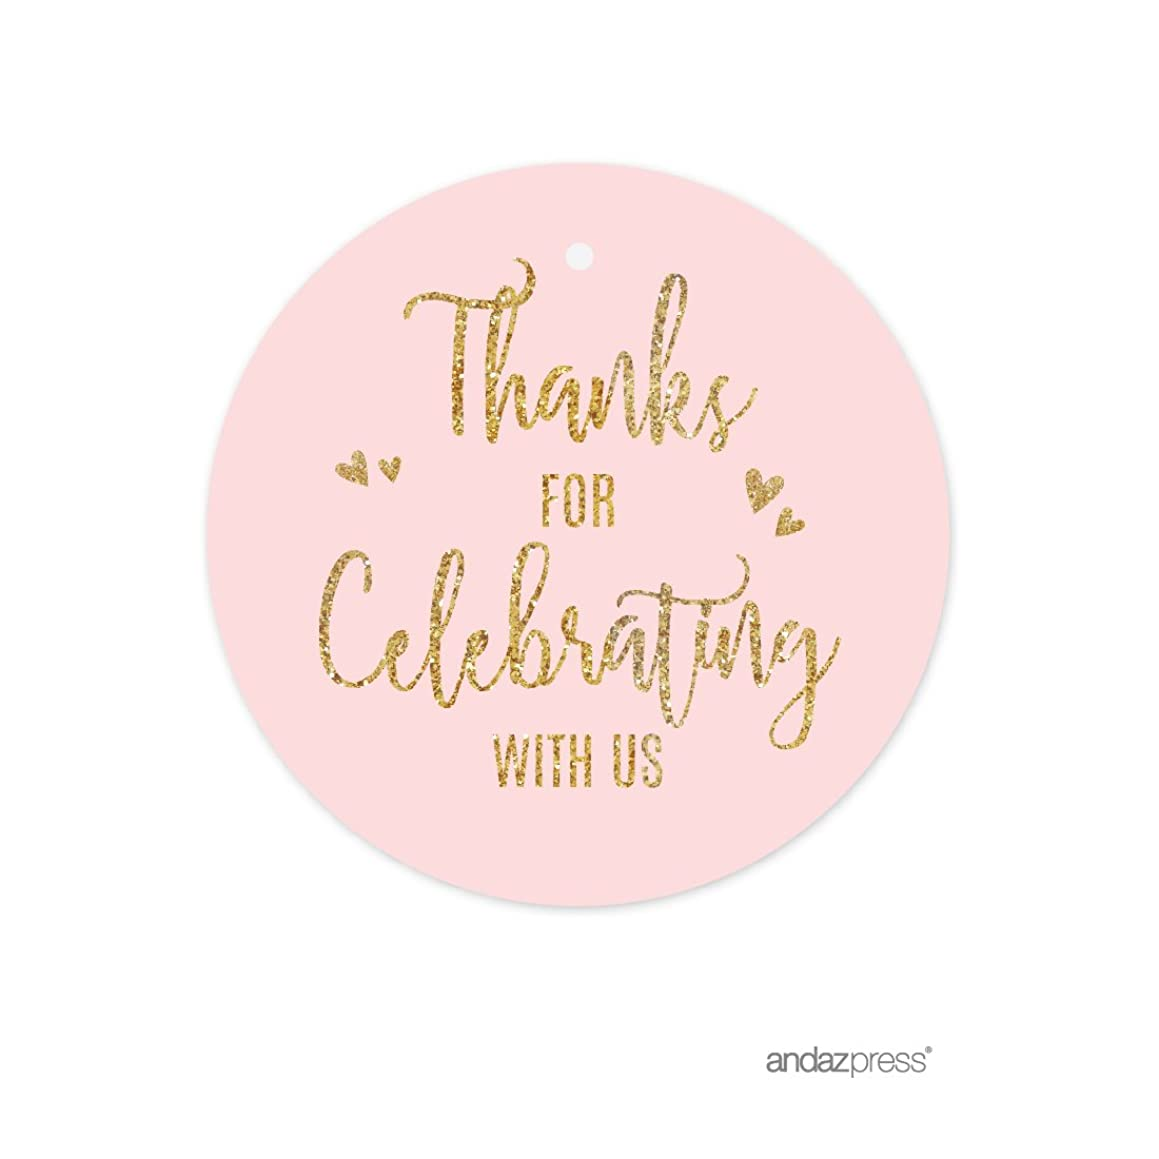 Andaz Press Blush Pink Gold Glitter Print Wedding Collection, Round Circle Gift Tags, Thank You for Celebrating with US, 24-Pack